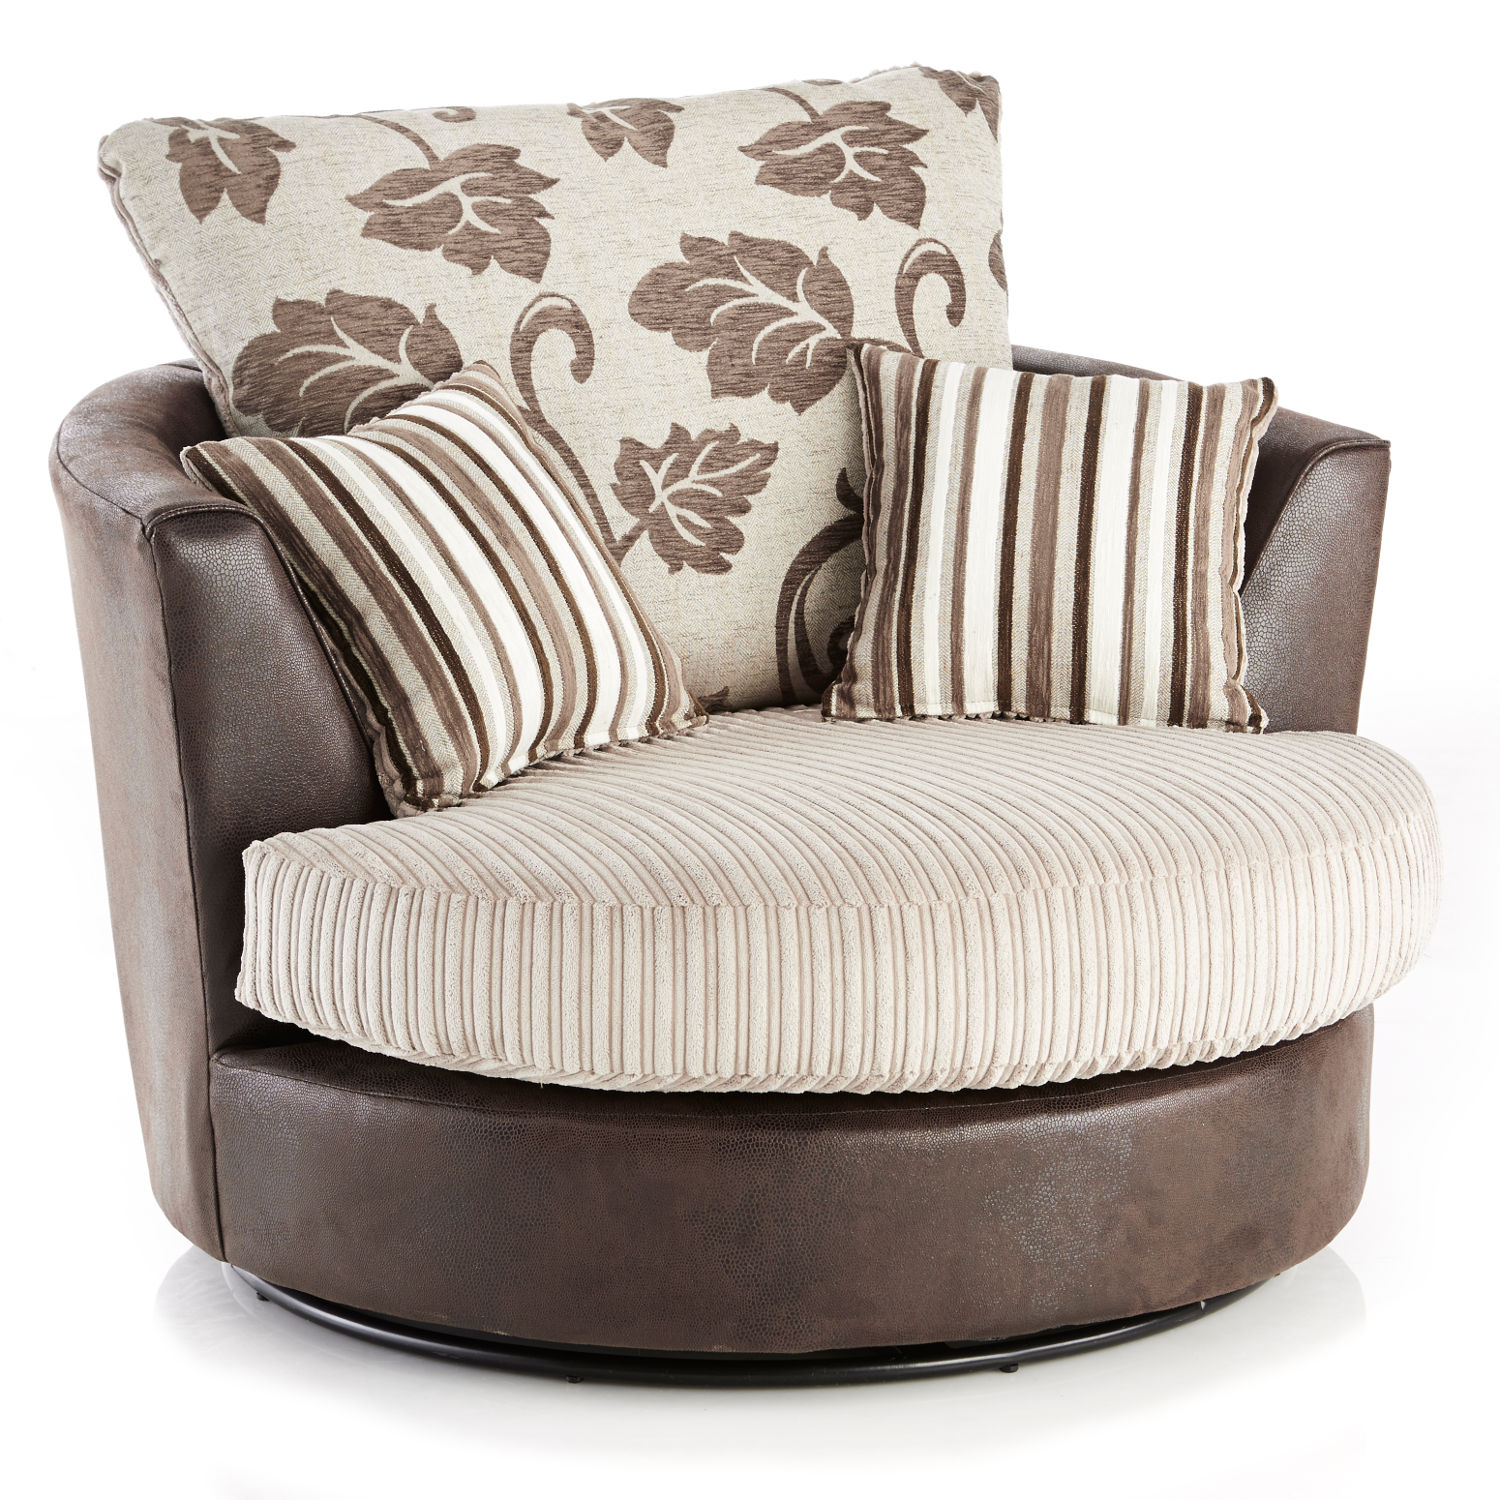 Lush Jumbo Cord Swivel Chair Just Sit On It